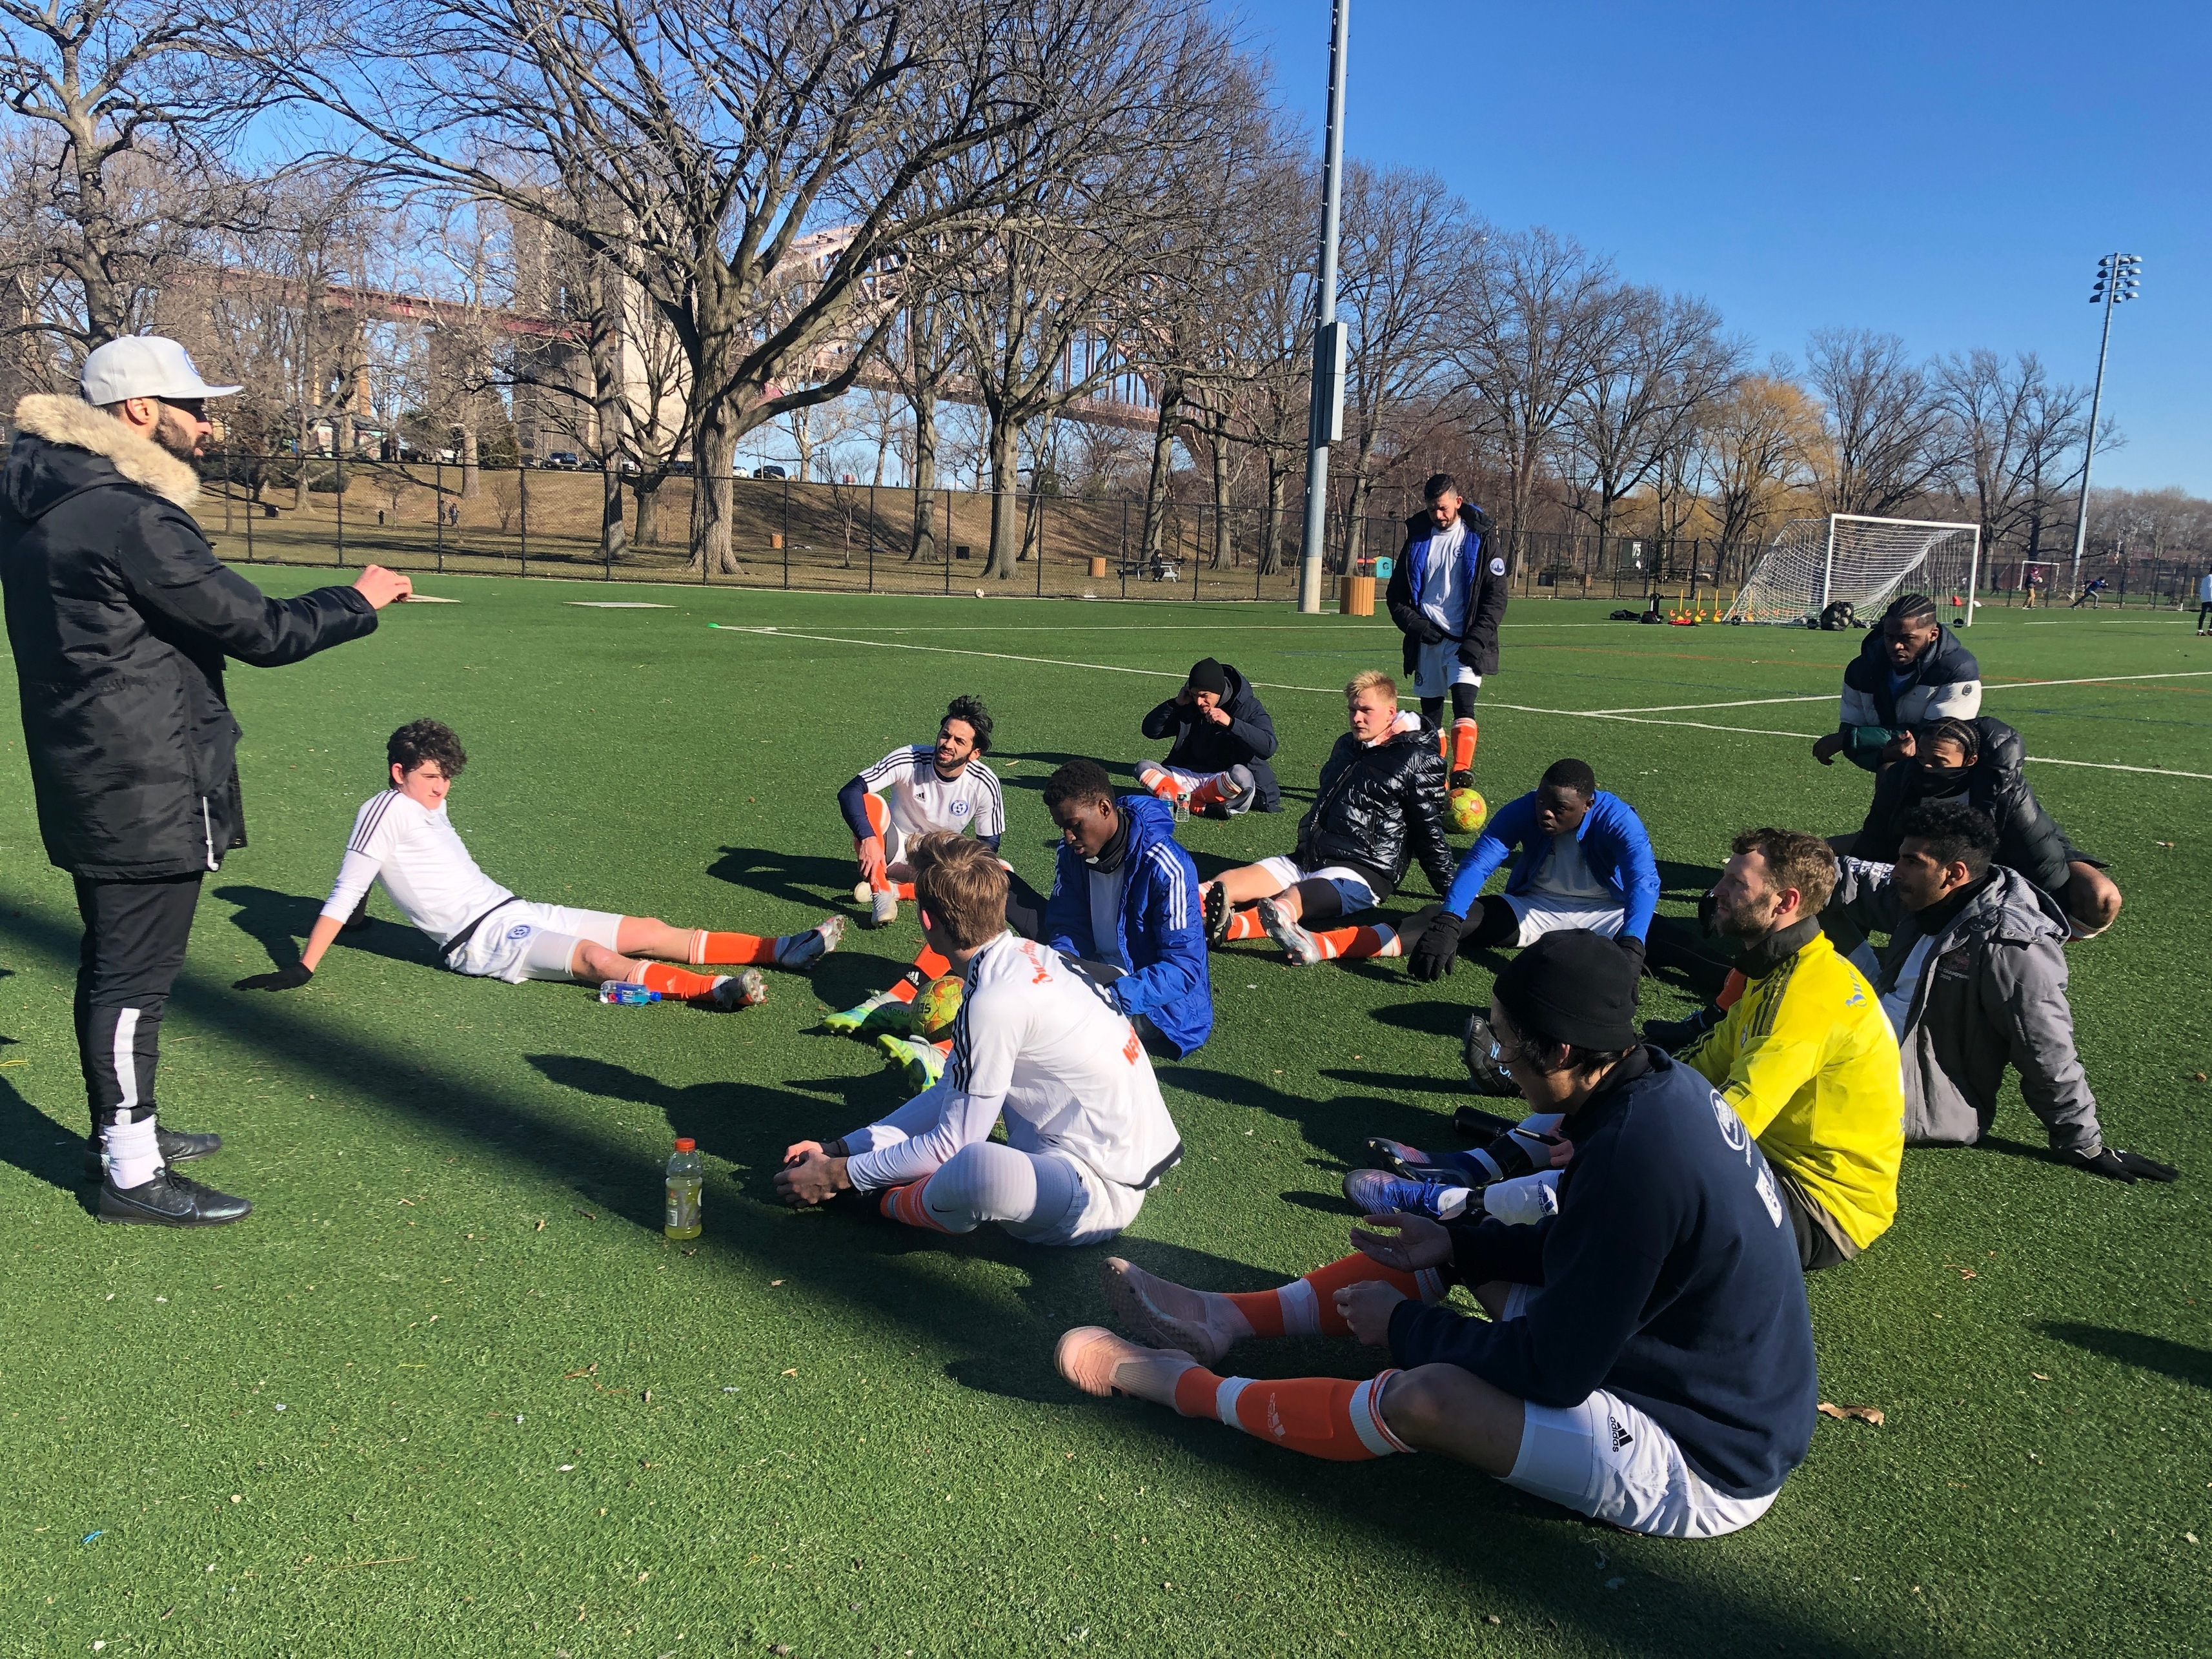 Zum II Kick Off Spring Season With Win, Celtic's Marco Charnas Opens Week 11 With Hat-Trick